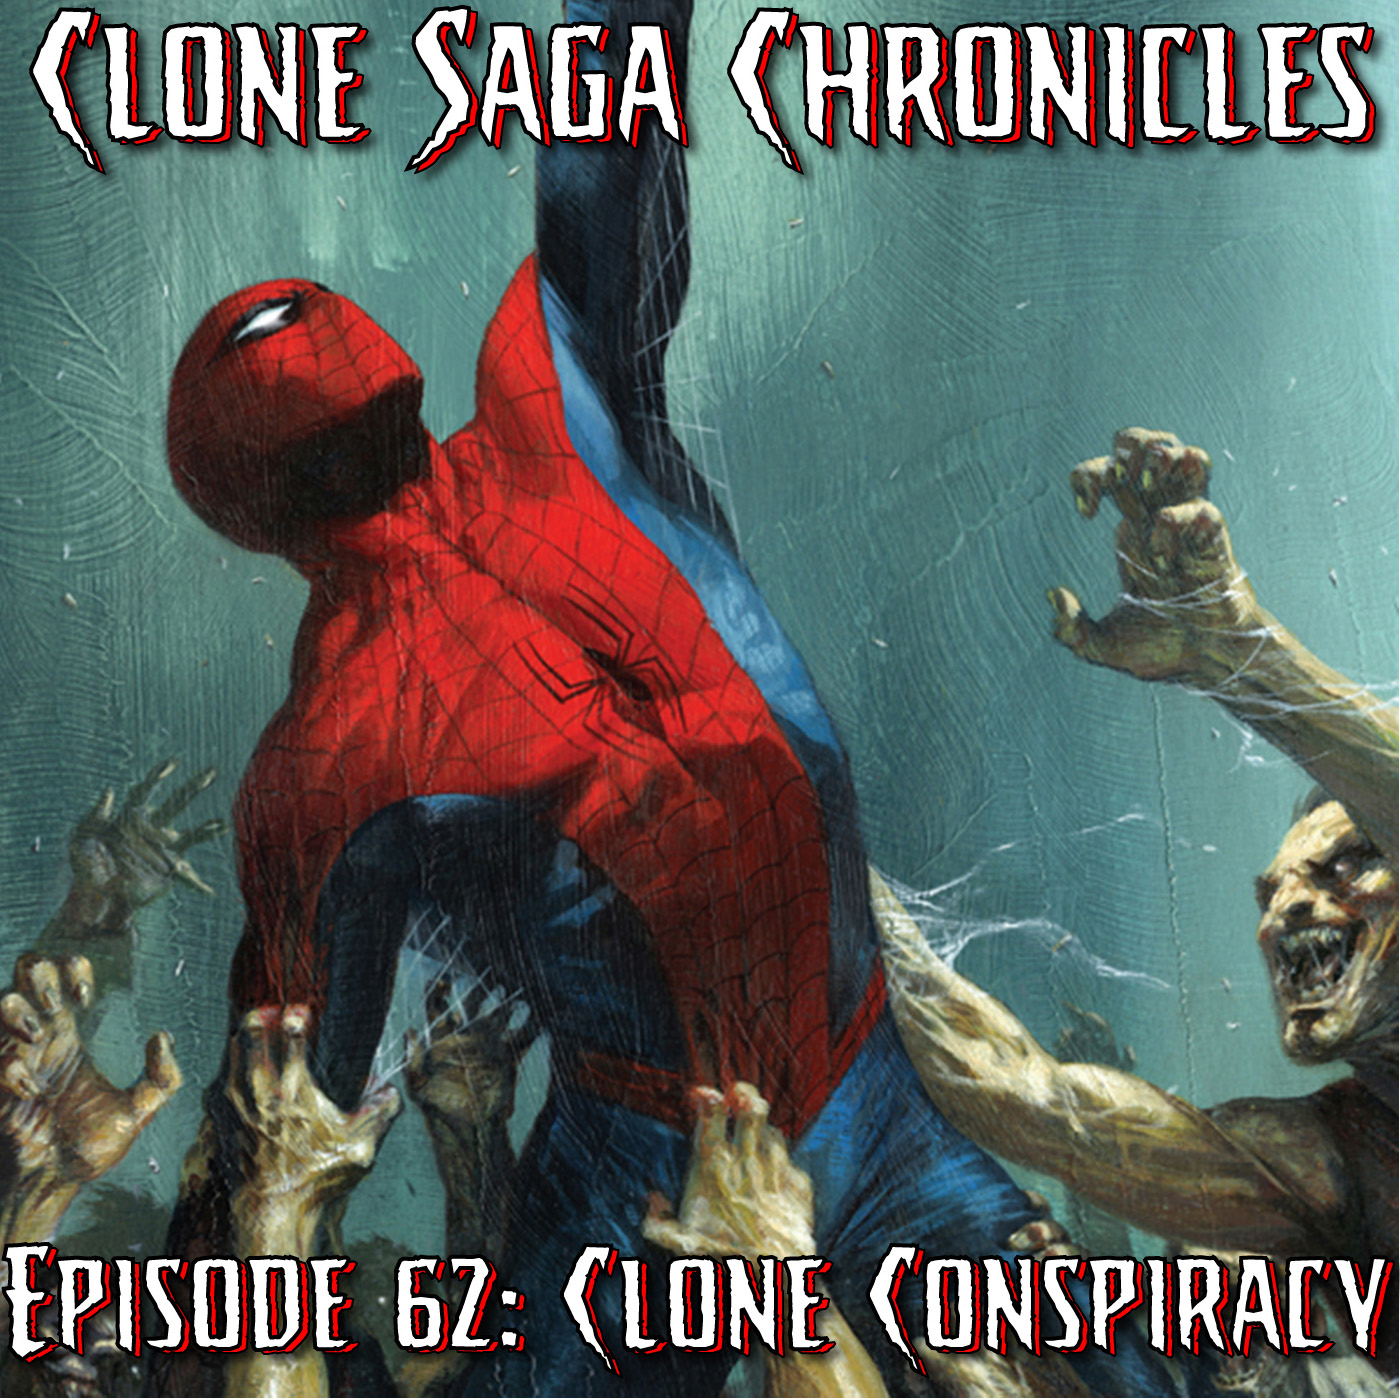 CSC Episode 62: The Clone Conspiracy